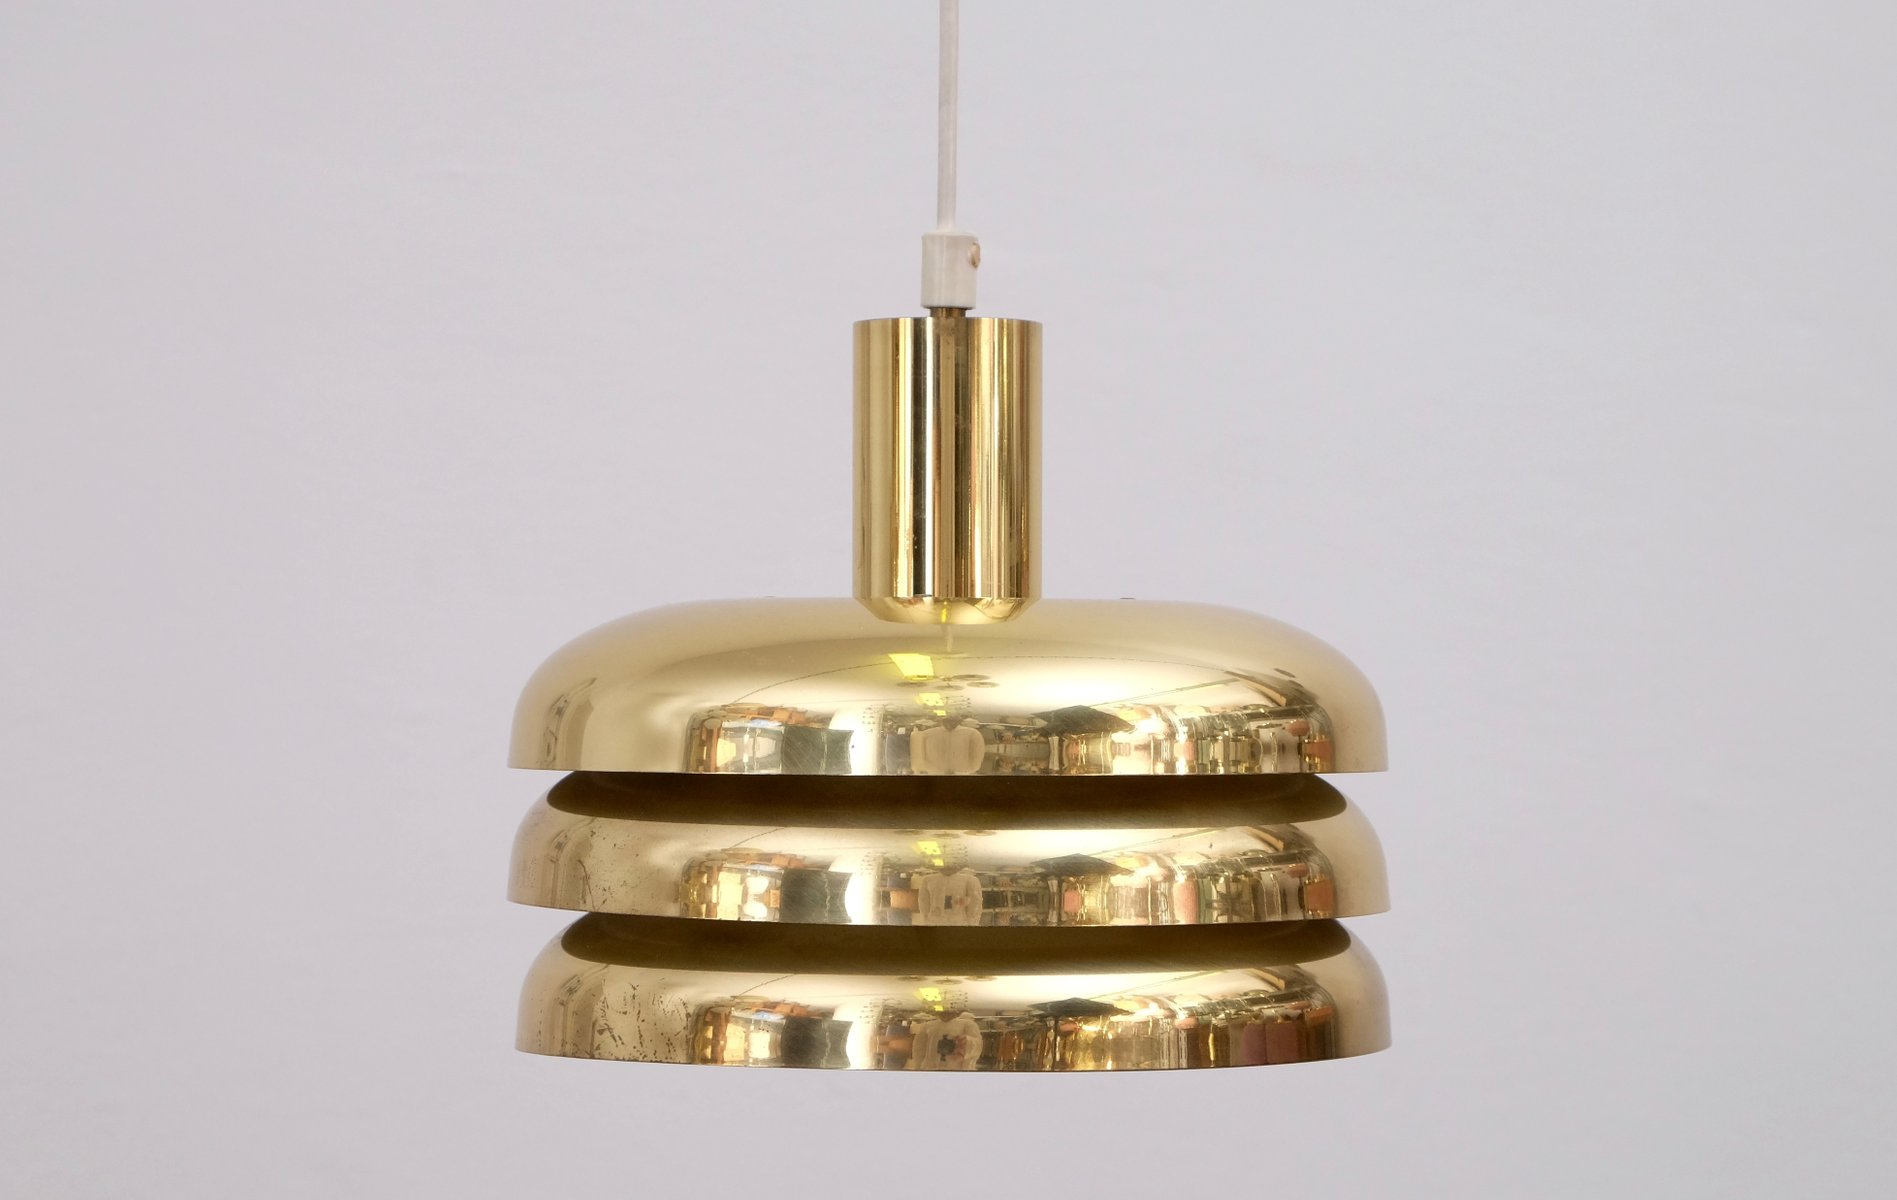 pan lights zoom p hold ceiling all lighting bhs the image light hol press pendant and brass drag pendants to